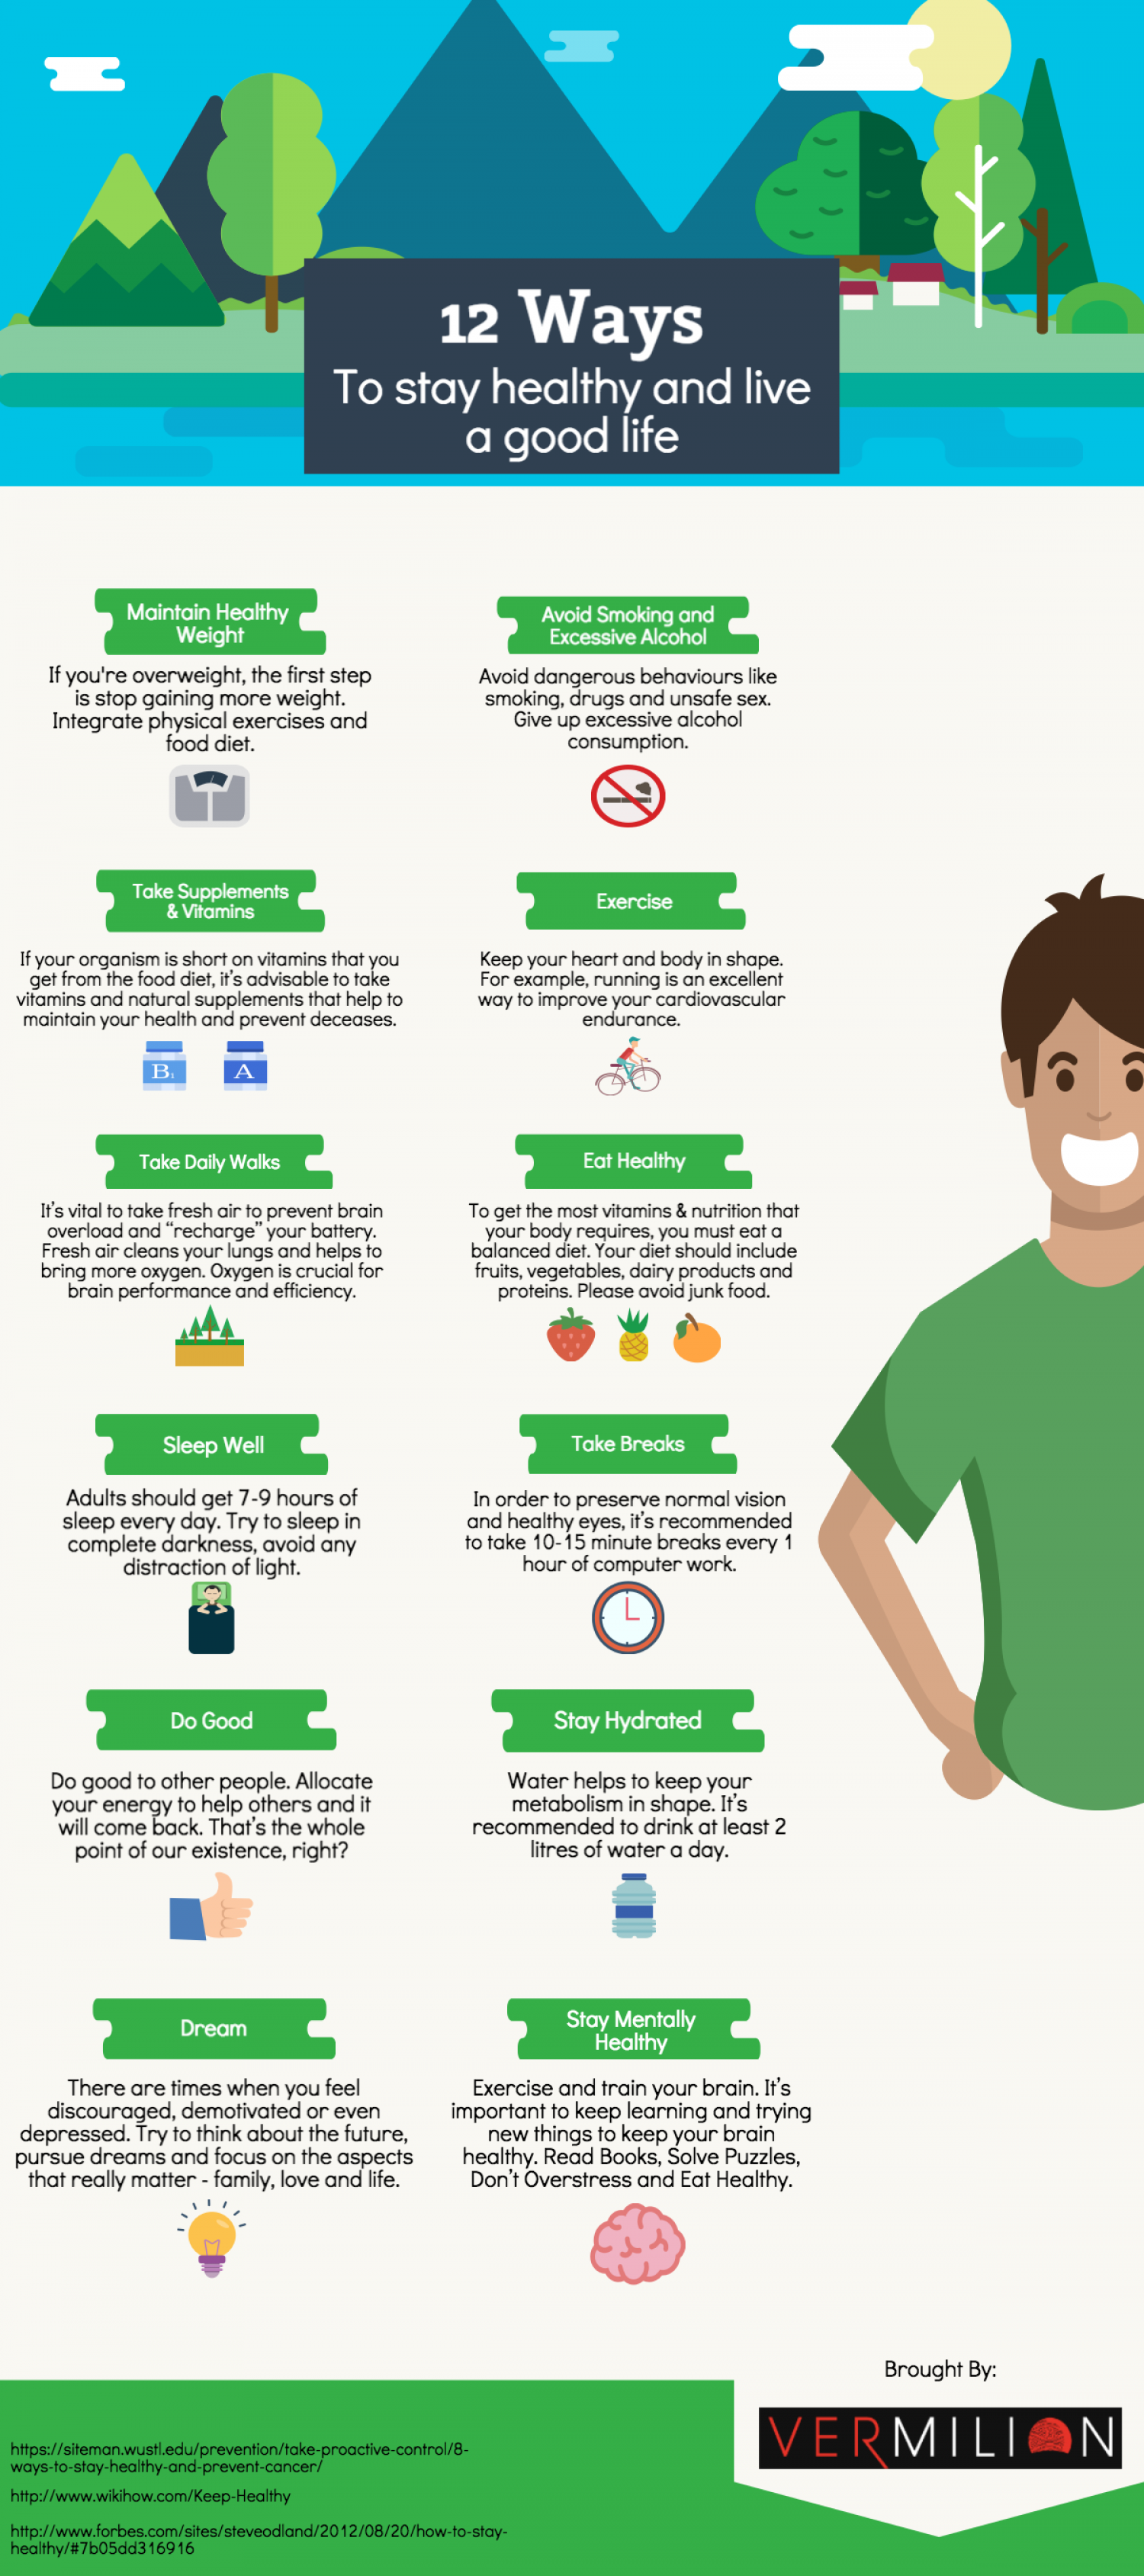 12 Ways to Stay Healthy and Live a Good Life Infographic